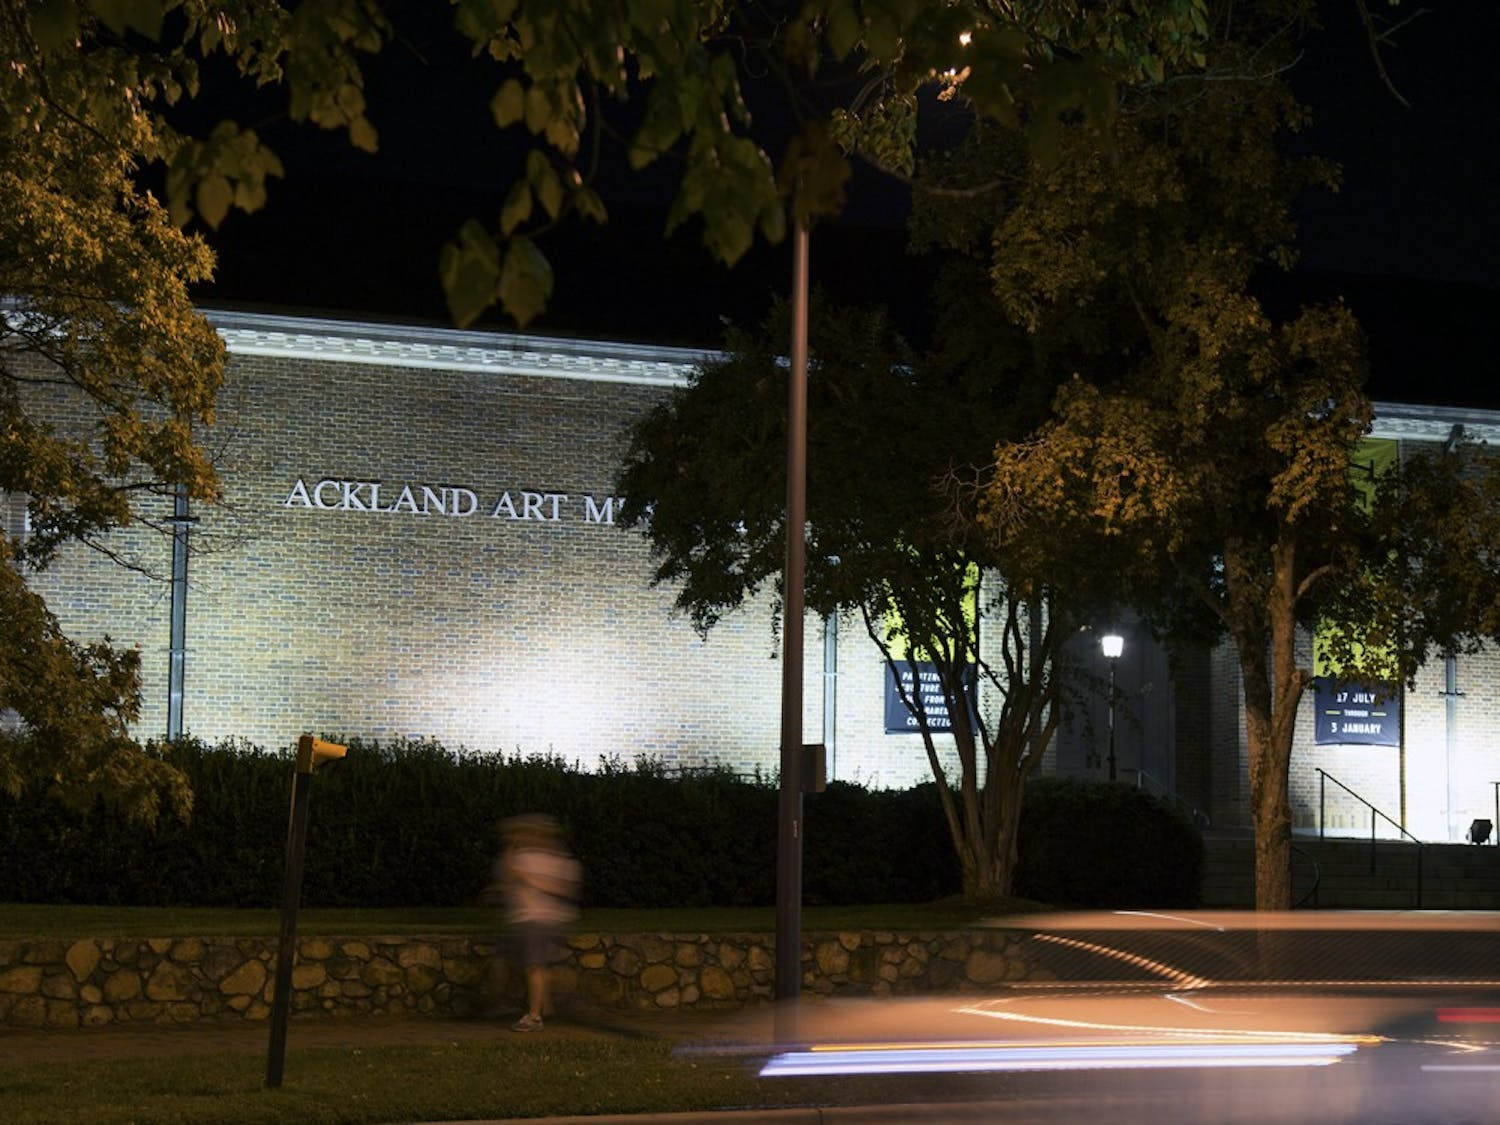 The Ackland Art Museum on Monday night.